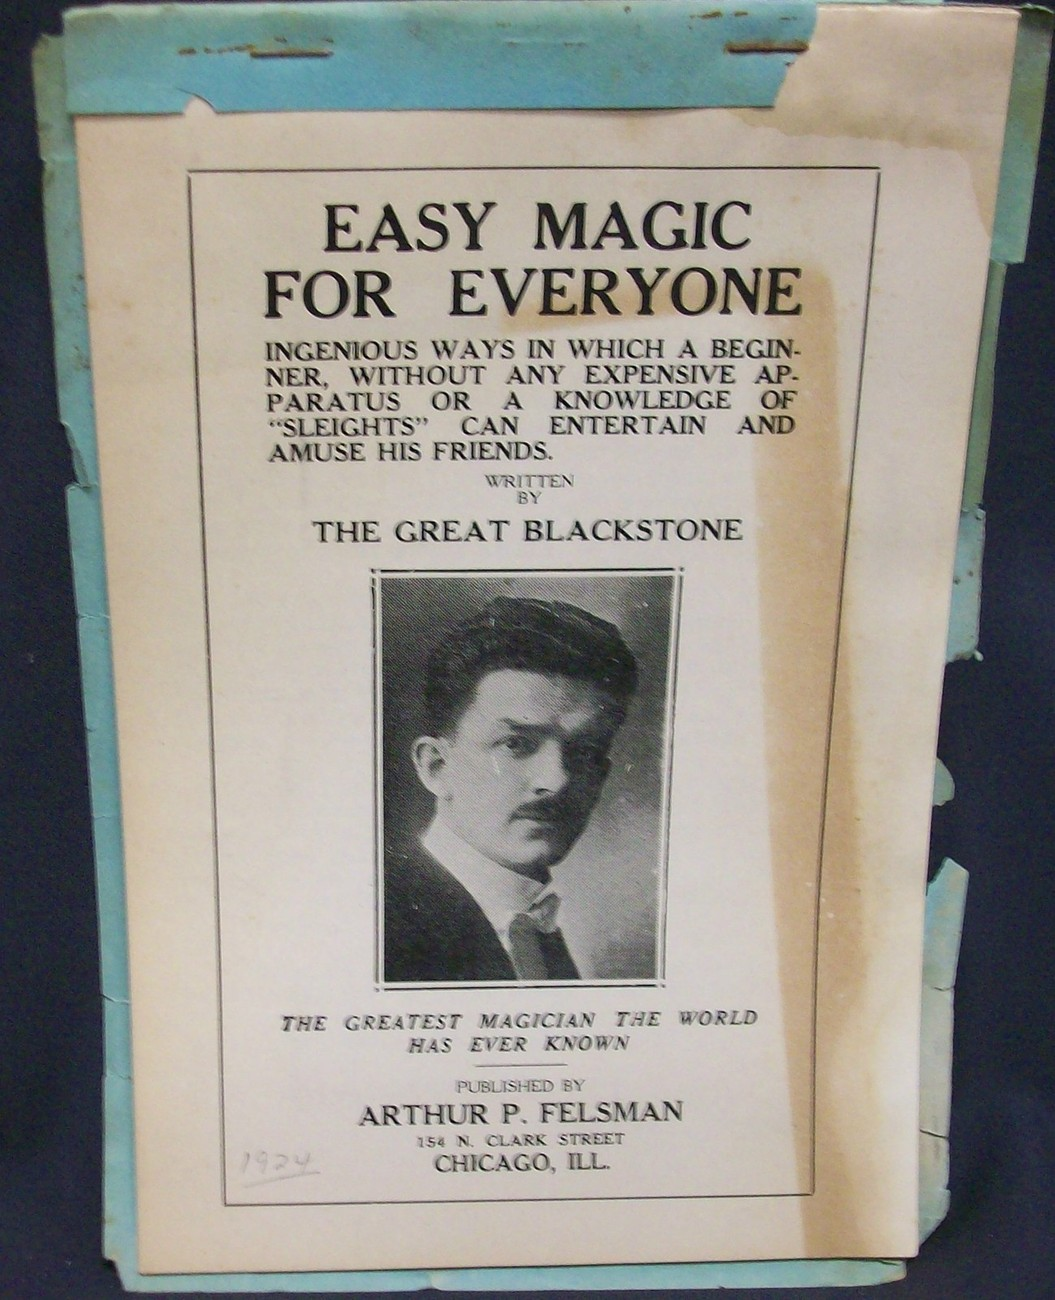 Easy Magic for Everyone by The Great Blackstone